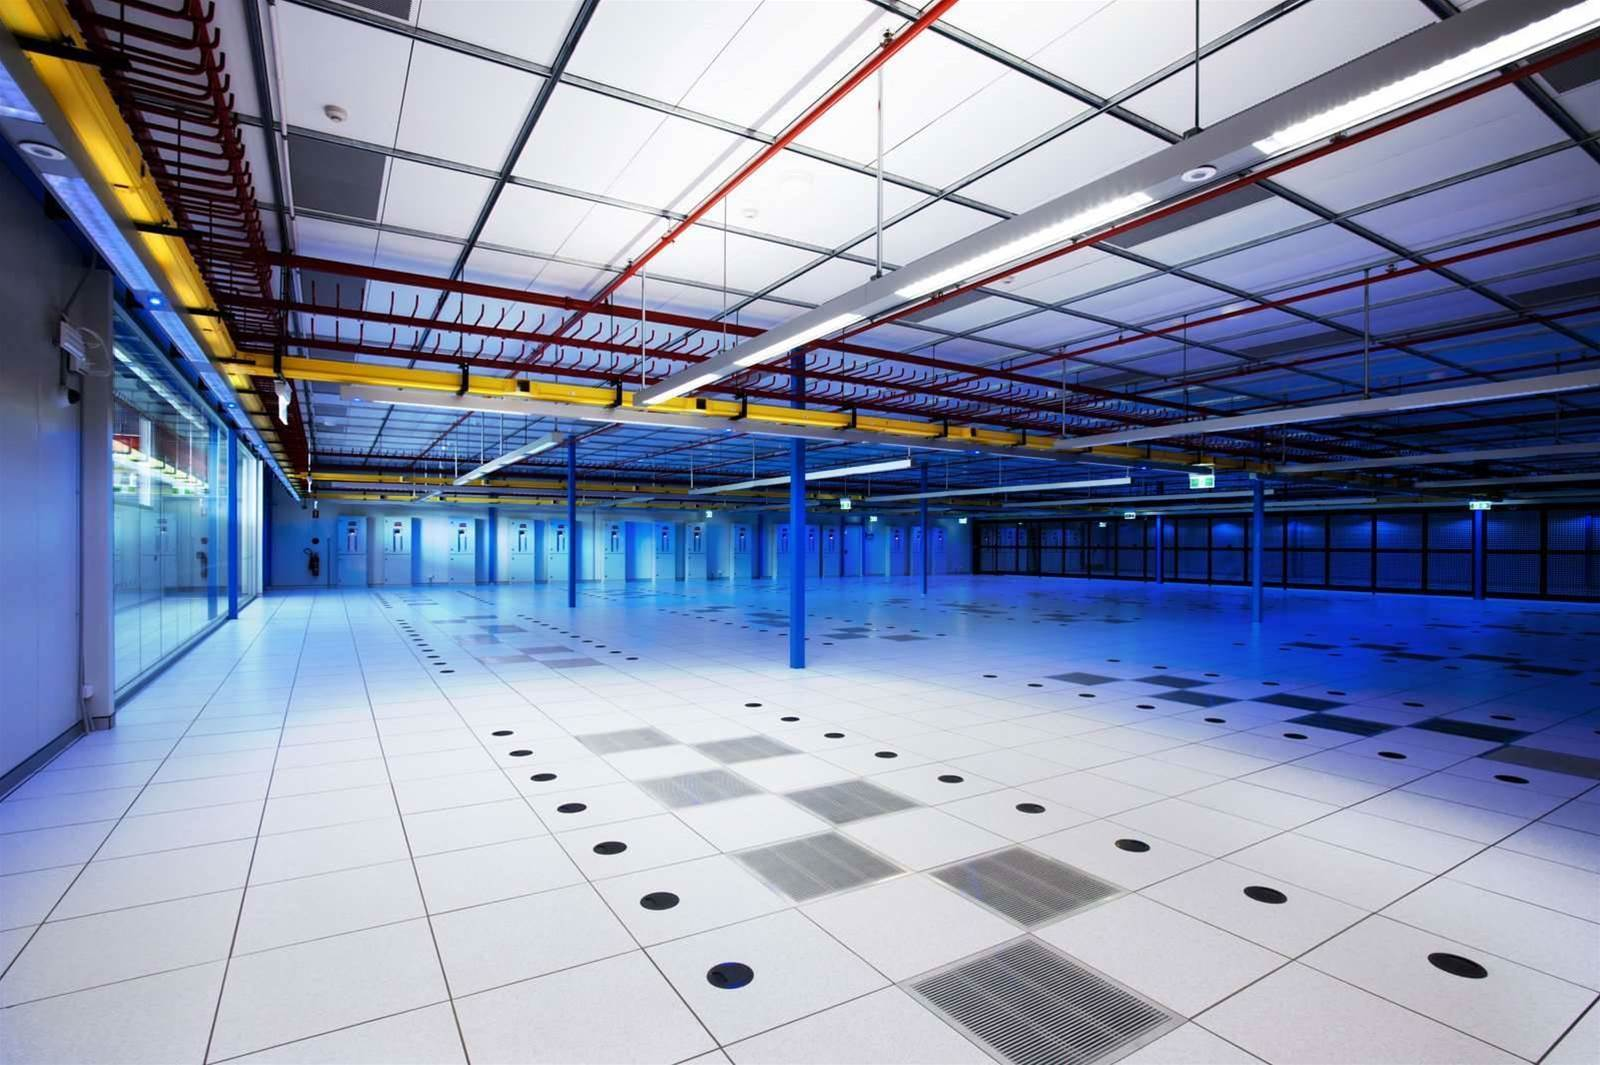 In pictures: Equinix opens phase two of SY3 data centre